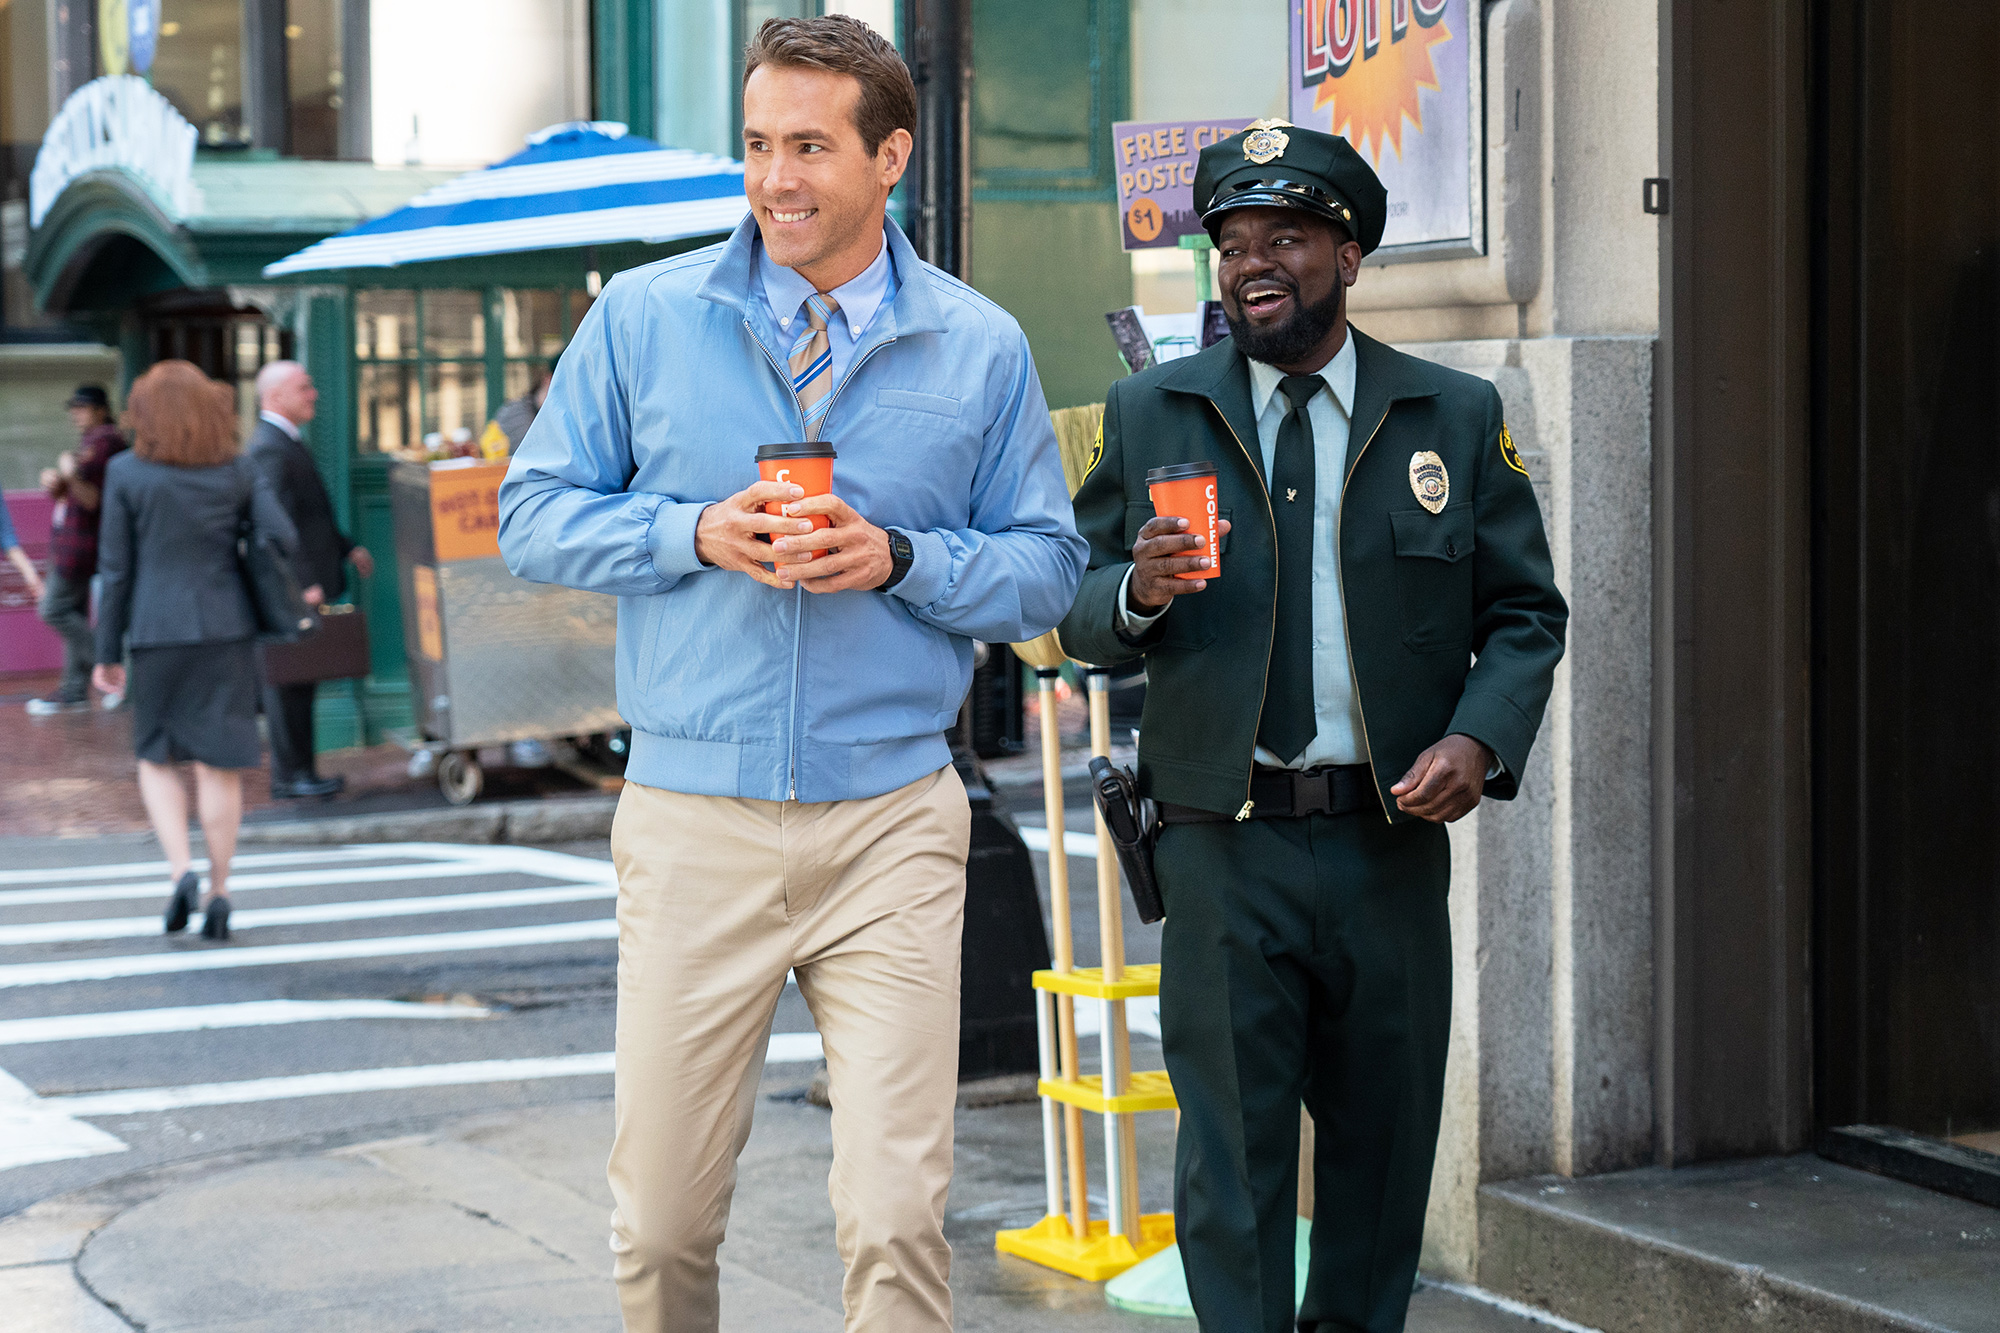 Ryan Reynolds as Guy and Lil Rel Howery as Buddy in 20th Century Studios' FREE GUY.